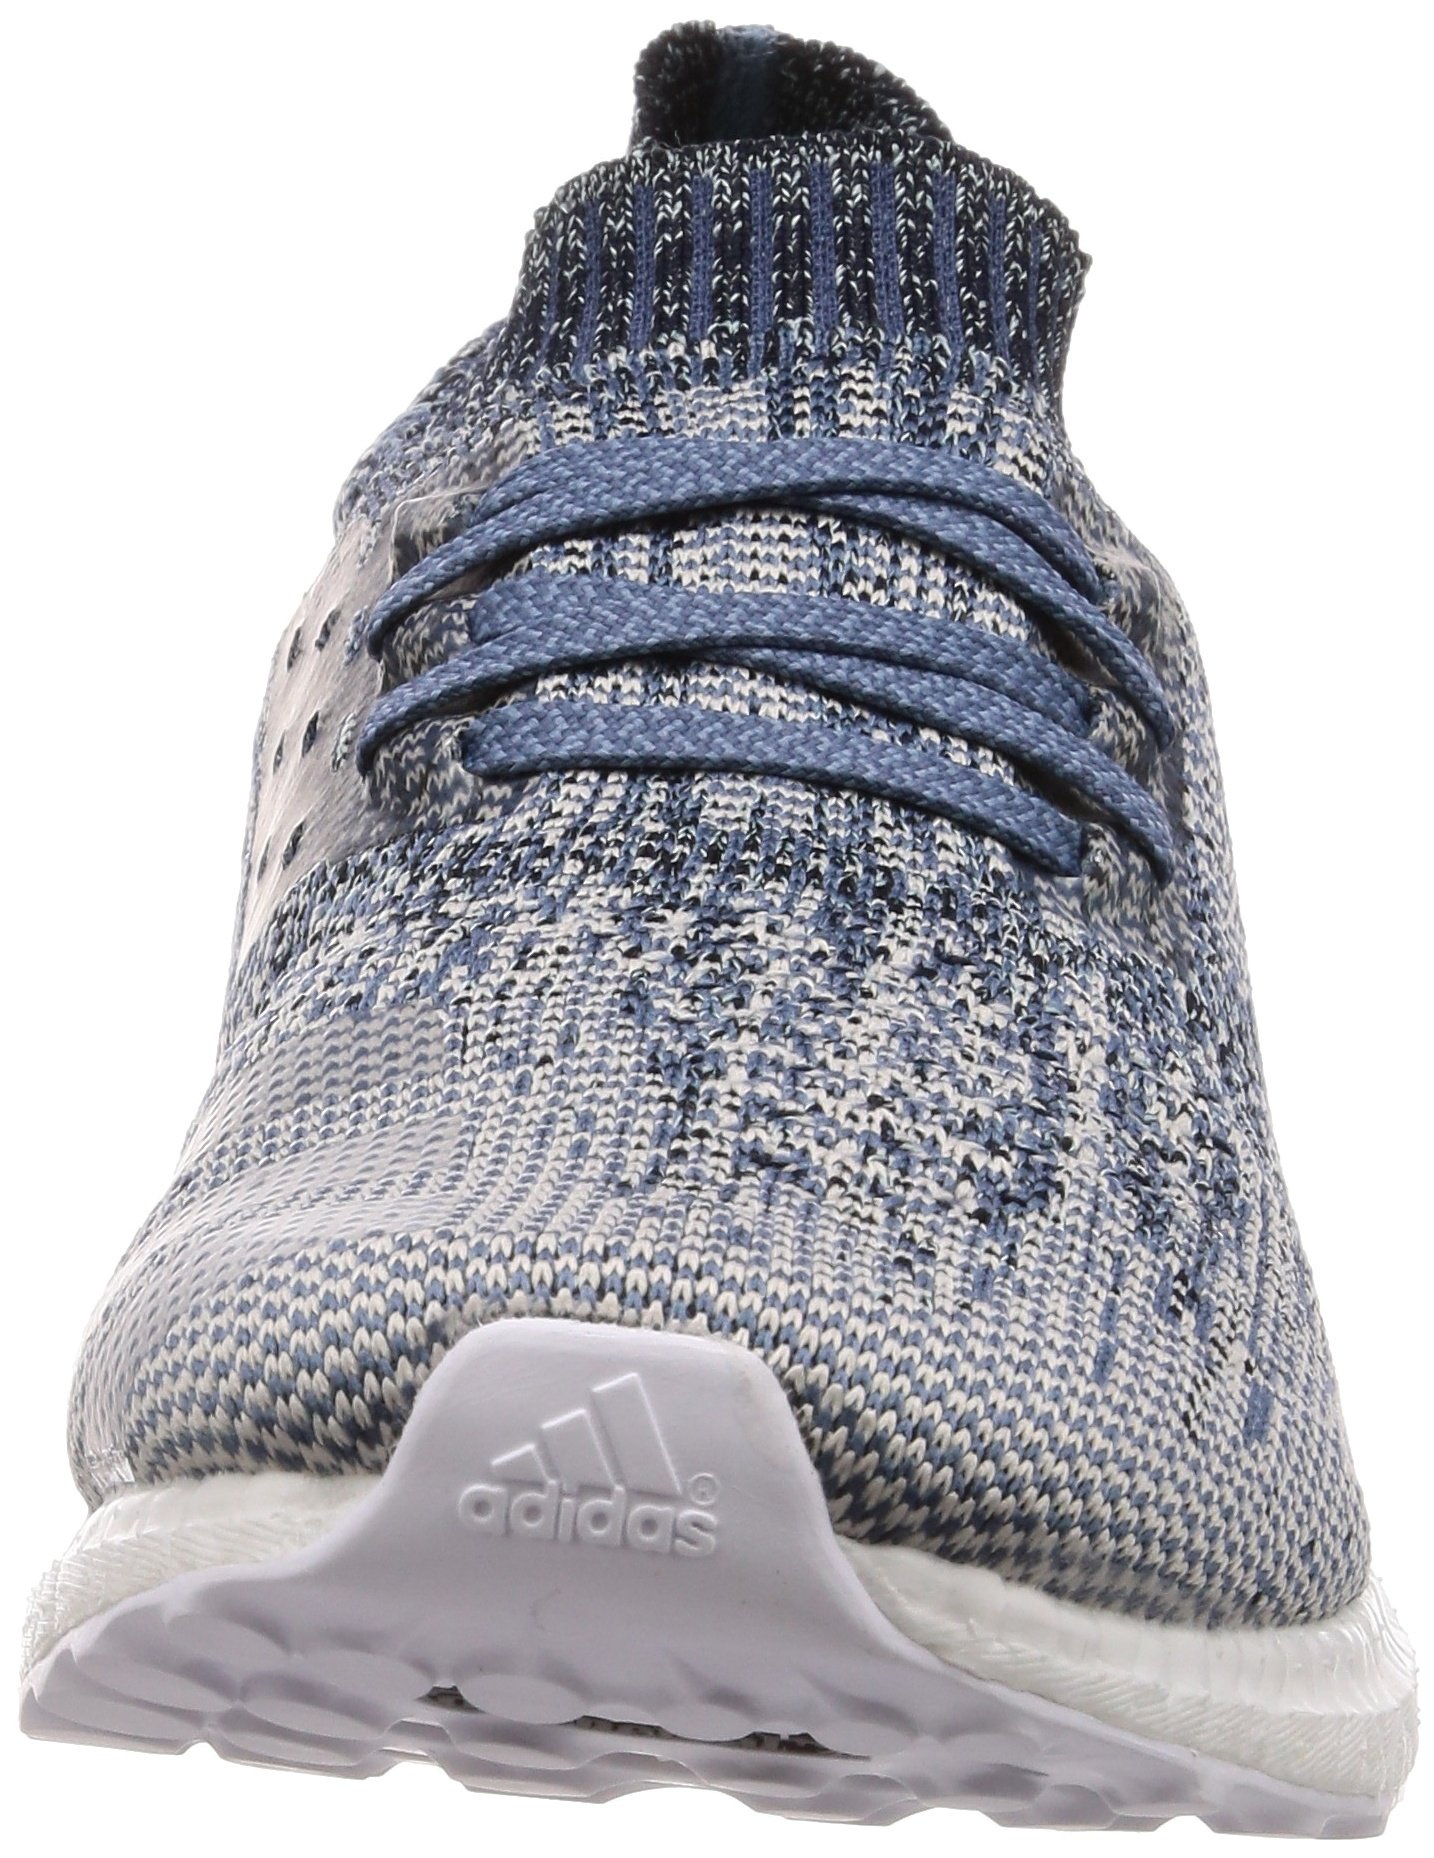 new product 435a4 3ba6c adidas Ultraboost Uncaged Parley Running Shoe - AW18